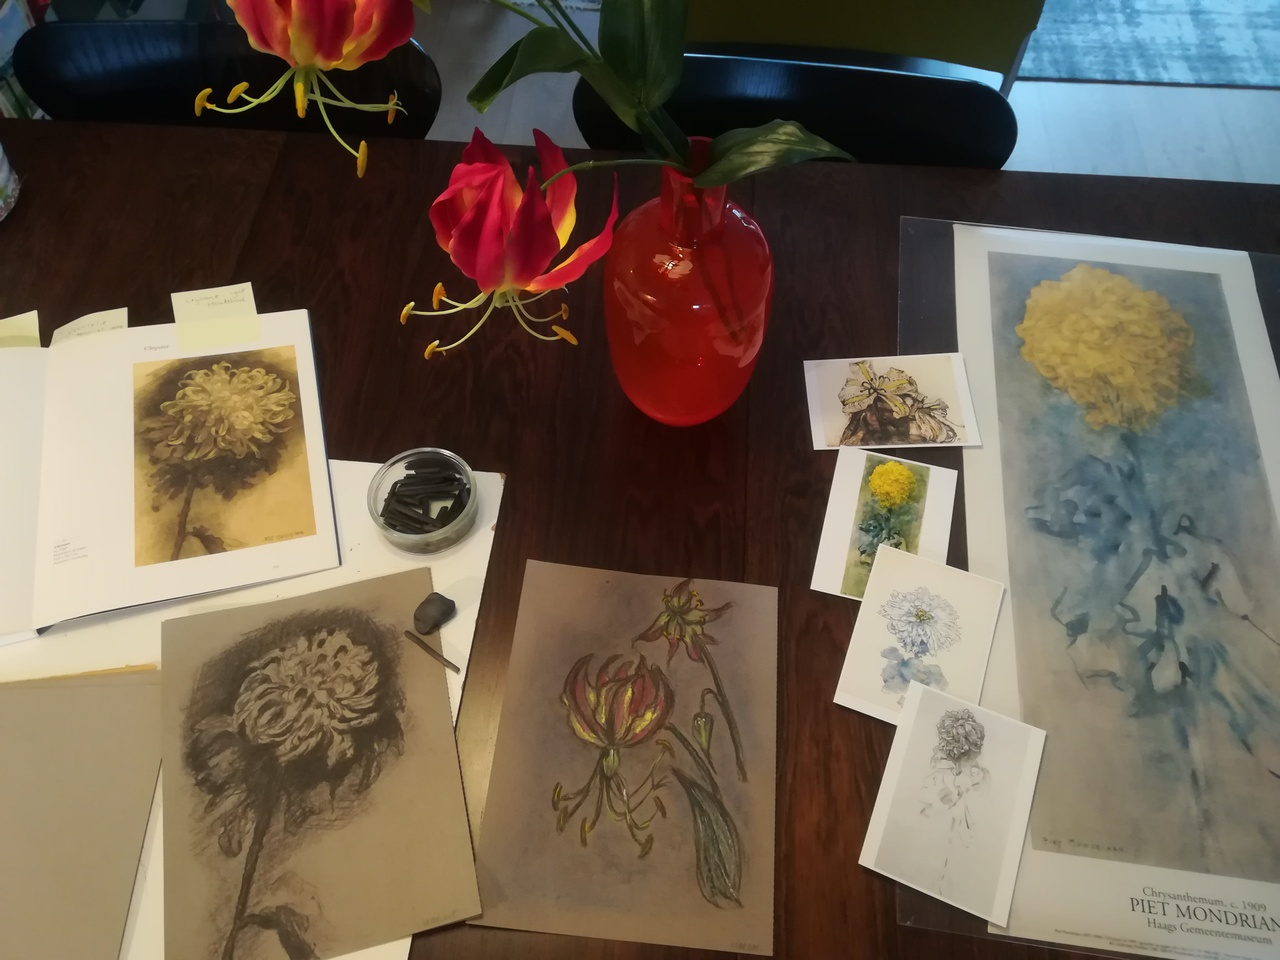 workshop Bloemen tekenen in houtskool 2.jpg